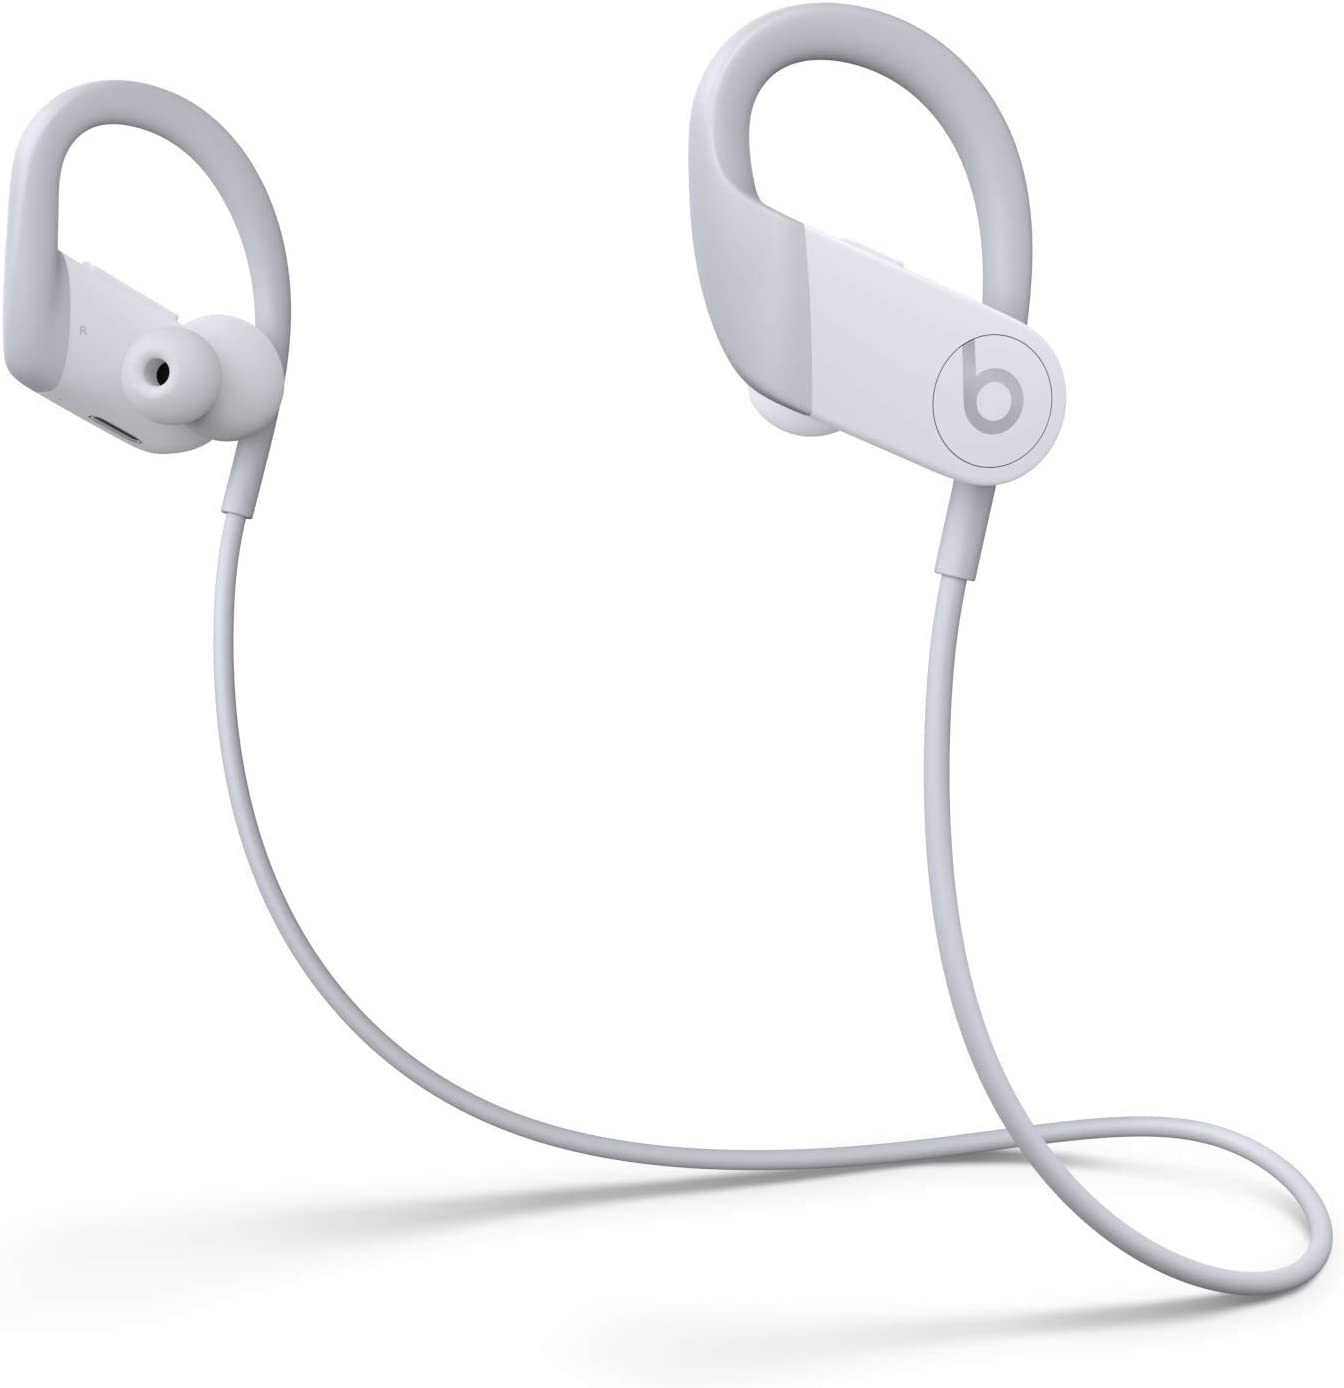 Beats by Dre Powerbeats High-Performance Wireless Earphones - White - MWNW2LL/A